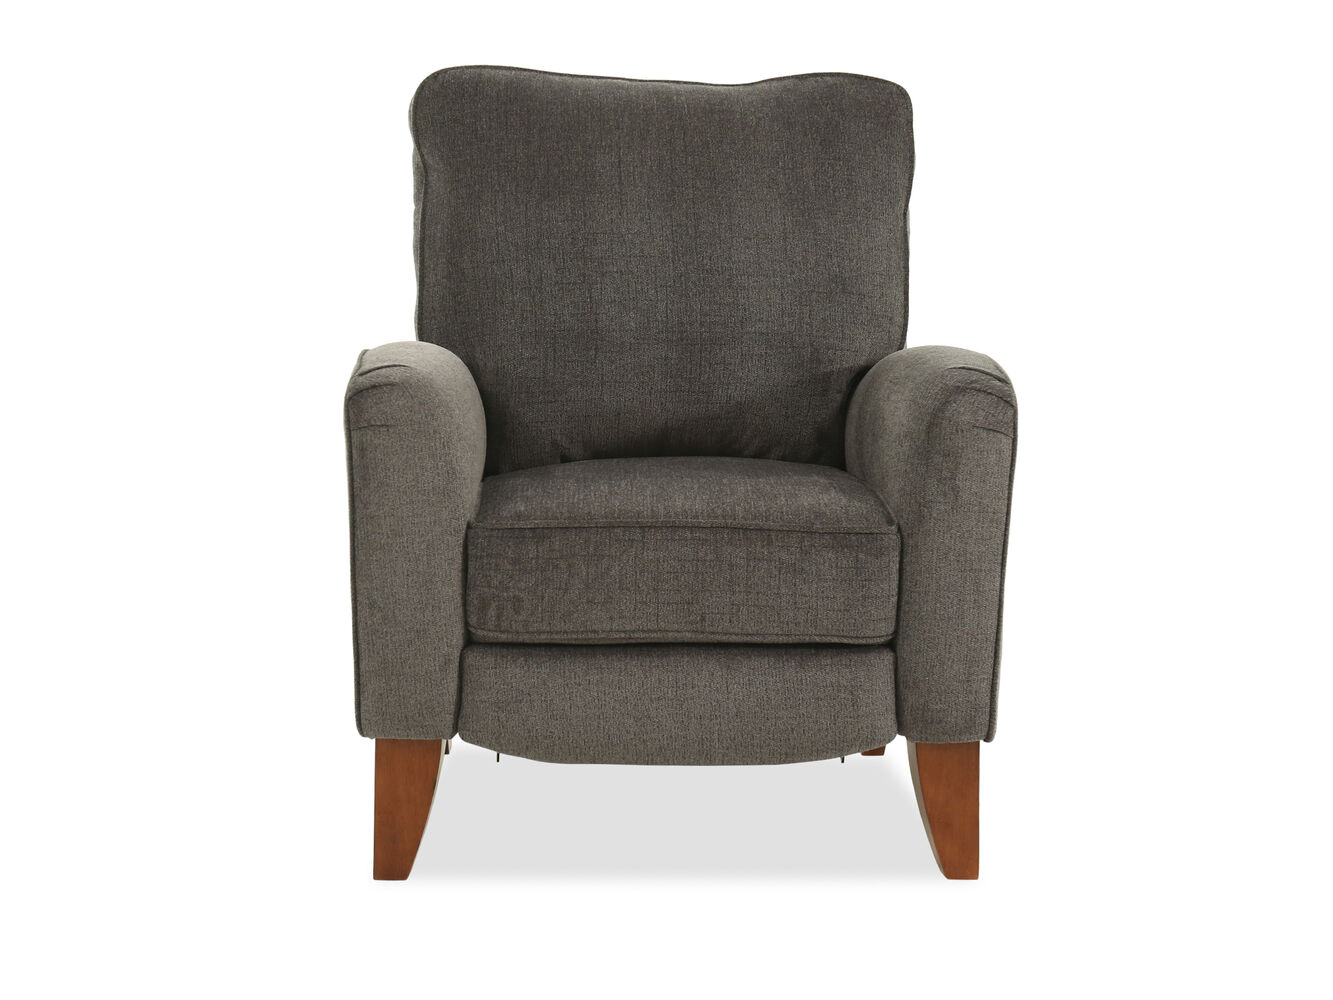 Images 40 Casual Wall Saver Recliner Nbsp In Gray